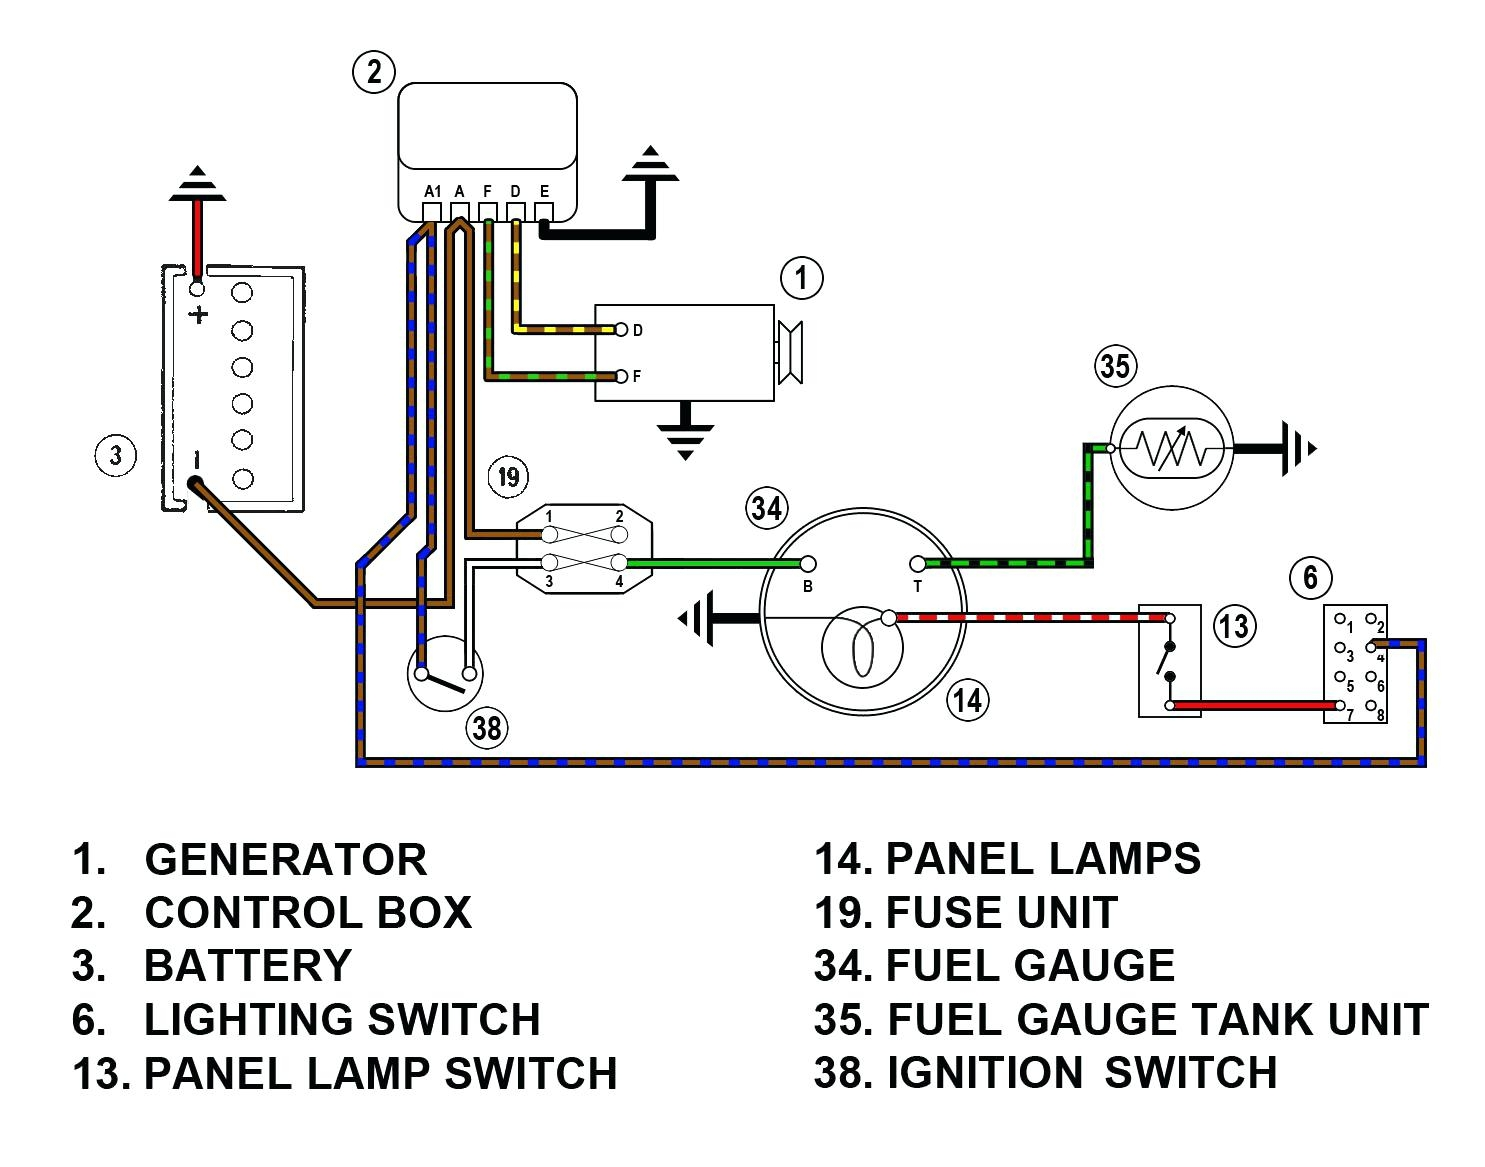 gooseneck trailer wiring diagram Download-Gooseneck Trailer Wiring Diagram Gallery 2-o